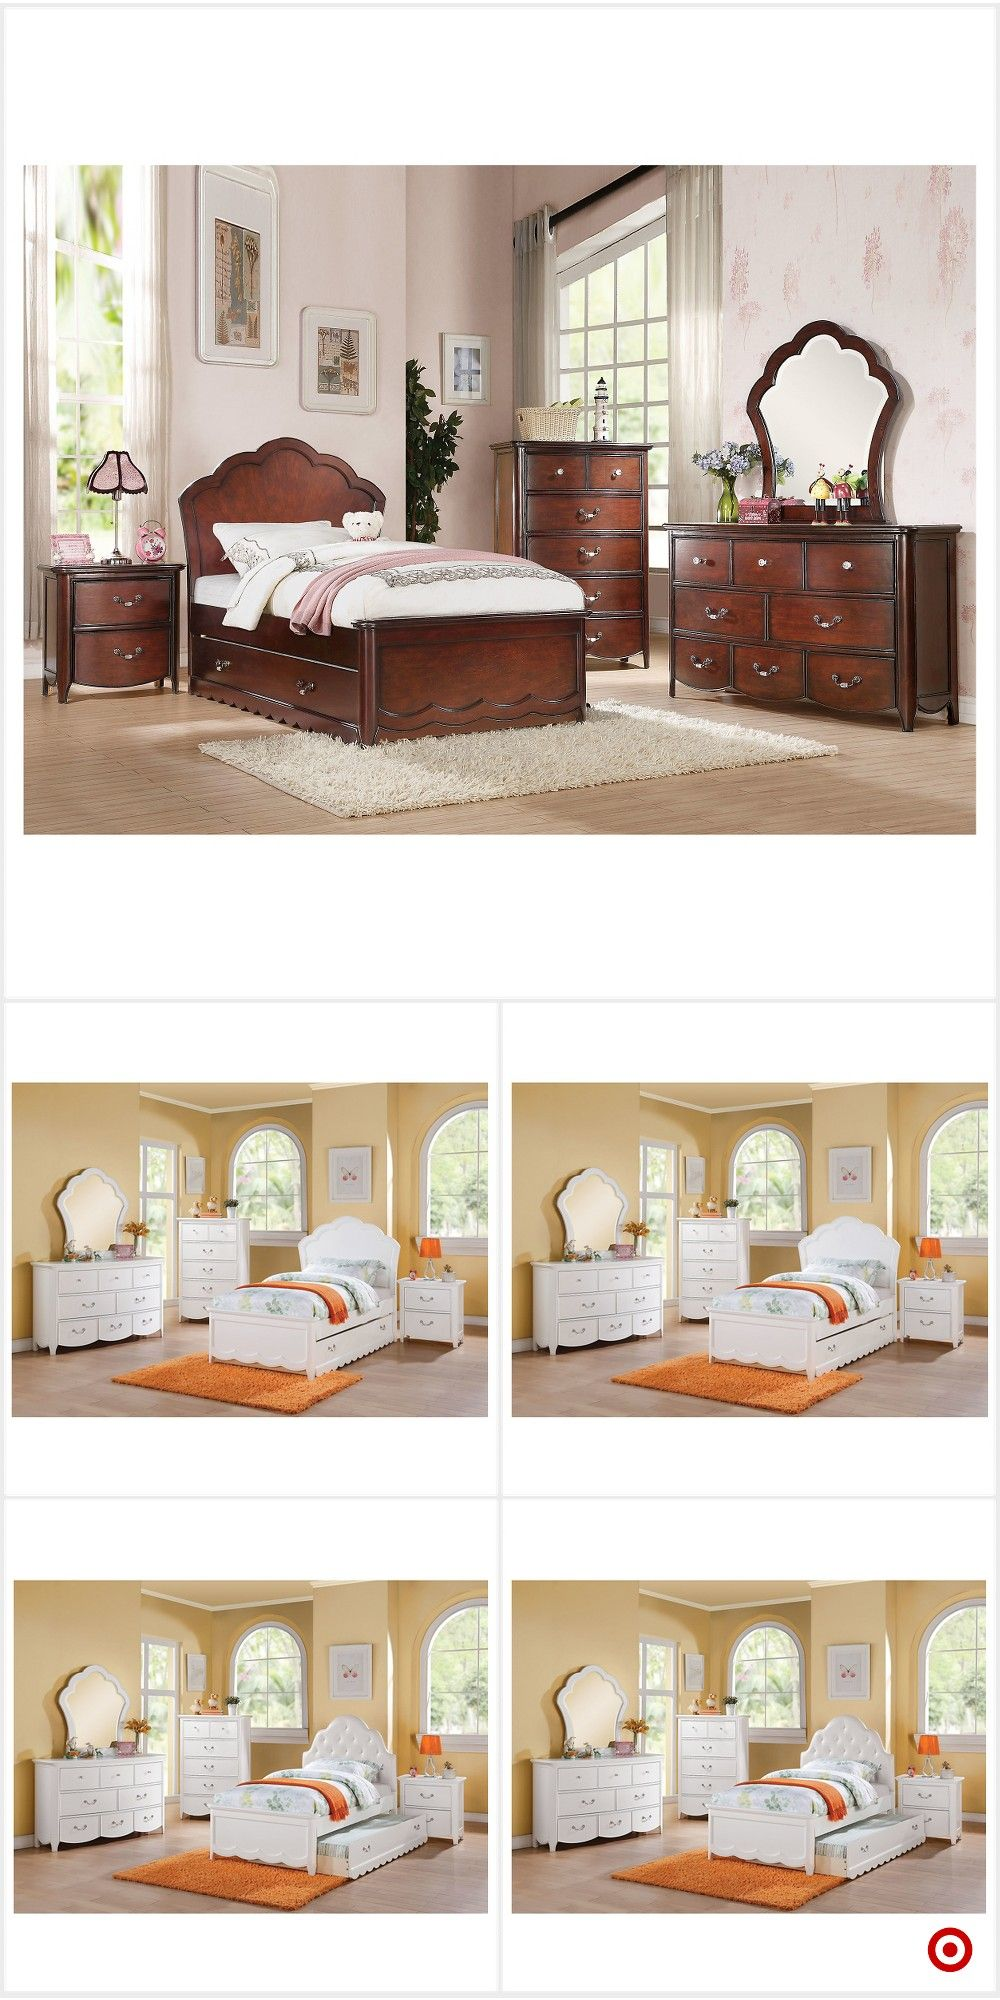 Shop Tar for kids beds and headboards you will love at great low